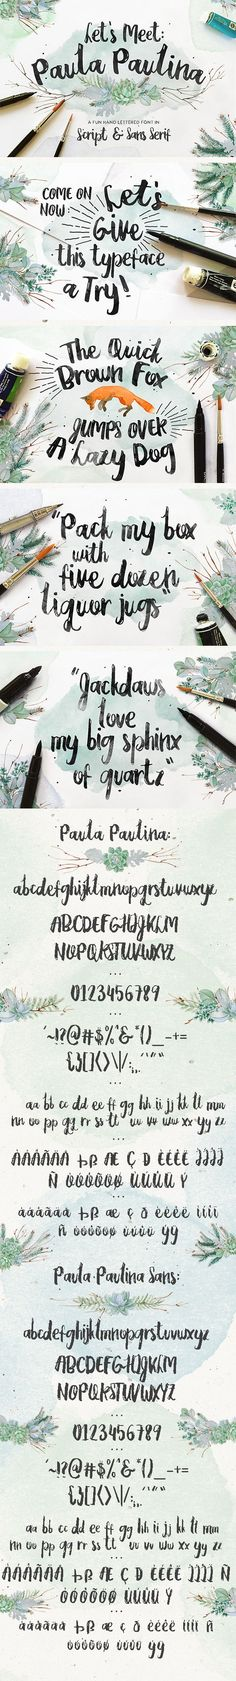 Paula Paulina is a duo font, script & sans, that mixes modern hand lettered typeface with dynamic curvy style. Vintage Typography, Typography Fonts, Typography Design, Cursive Fonts, Handwritten Letters, Hand Drawn Fonts, Hand Lettering, Font Shop, Christmas Fonts